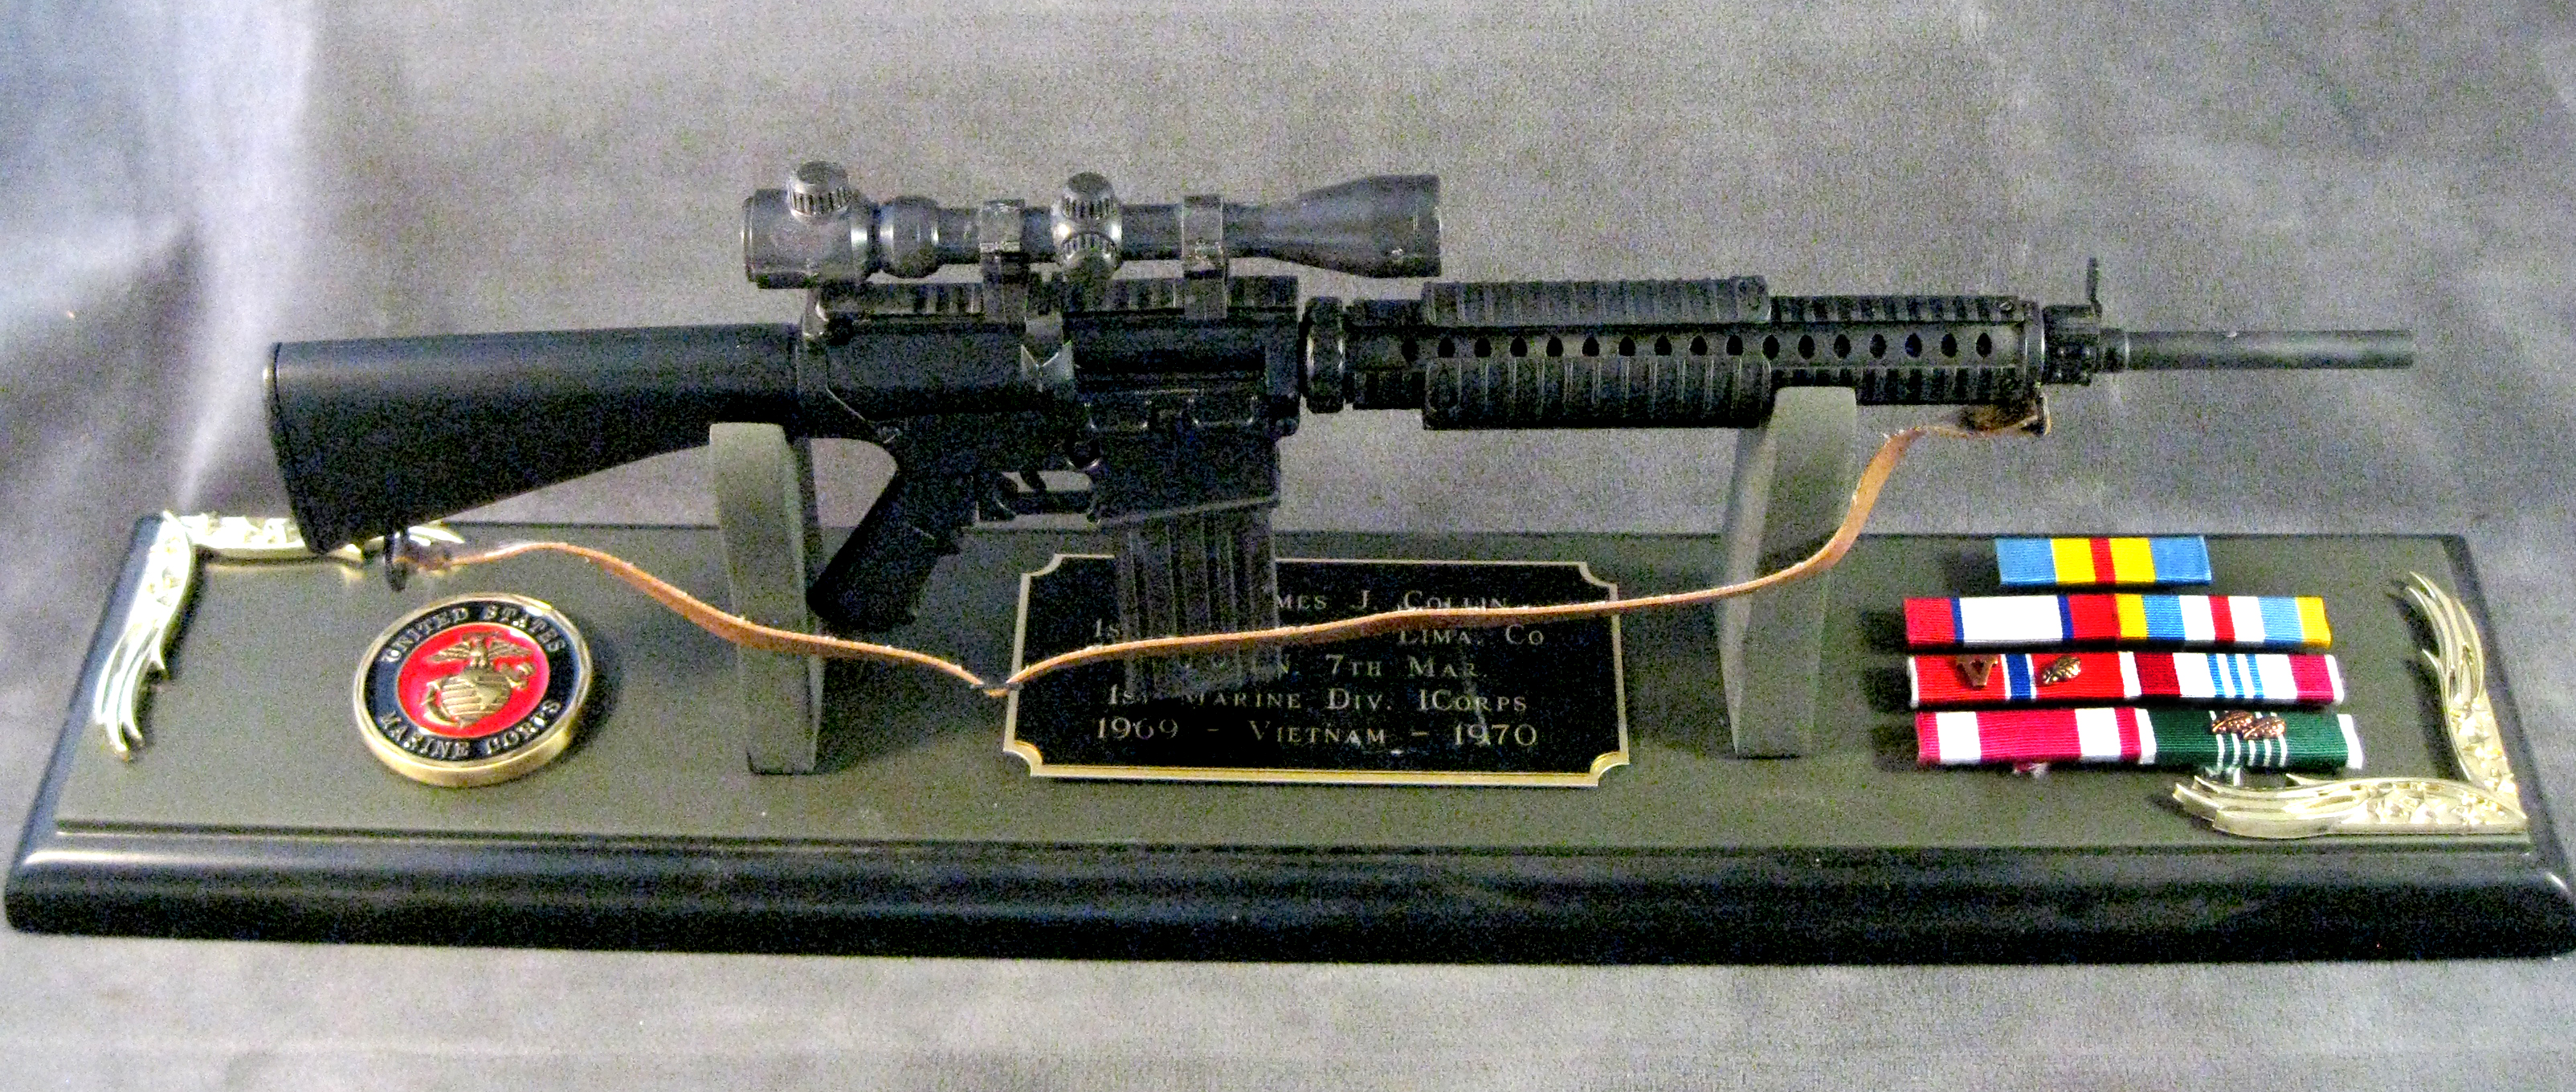 AR-10 sniper rifle 1/3 scale - Click Image to Close